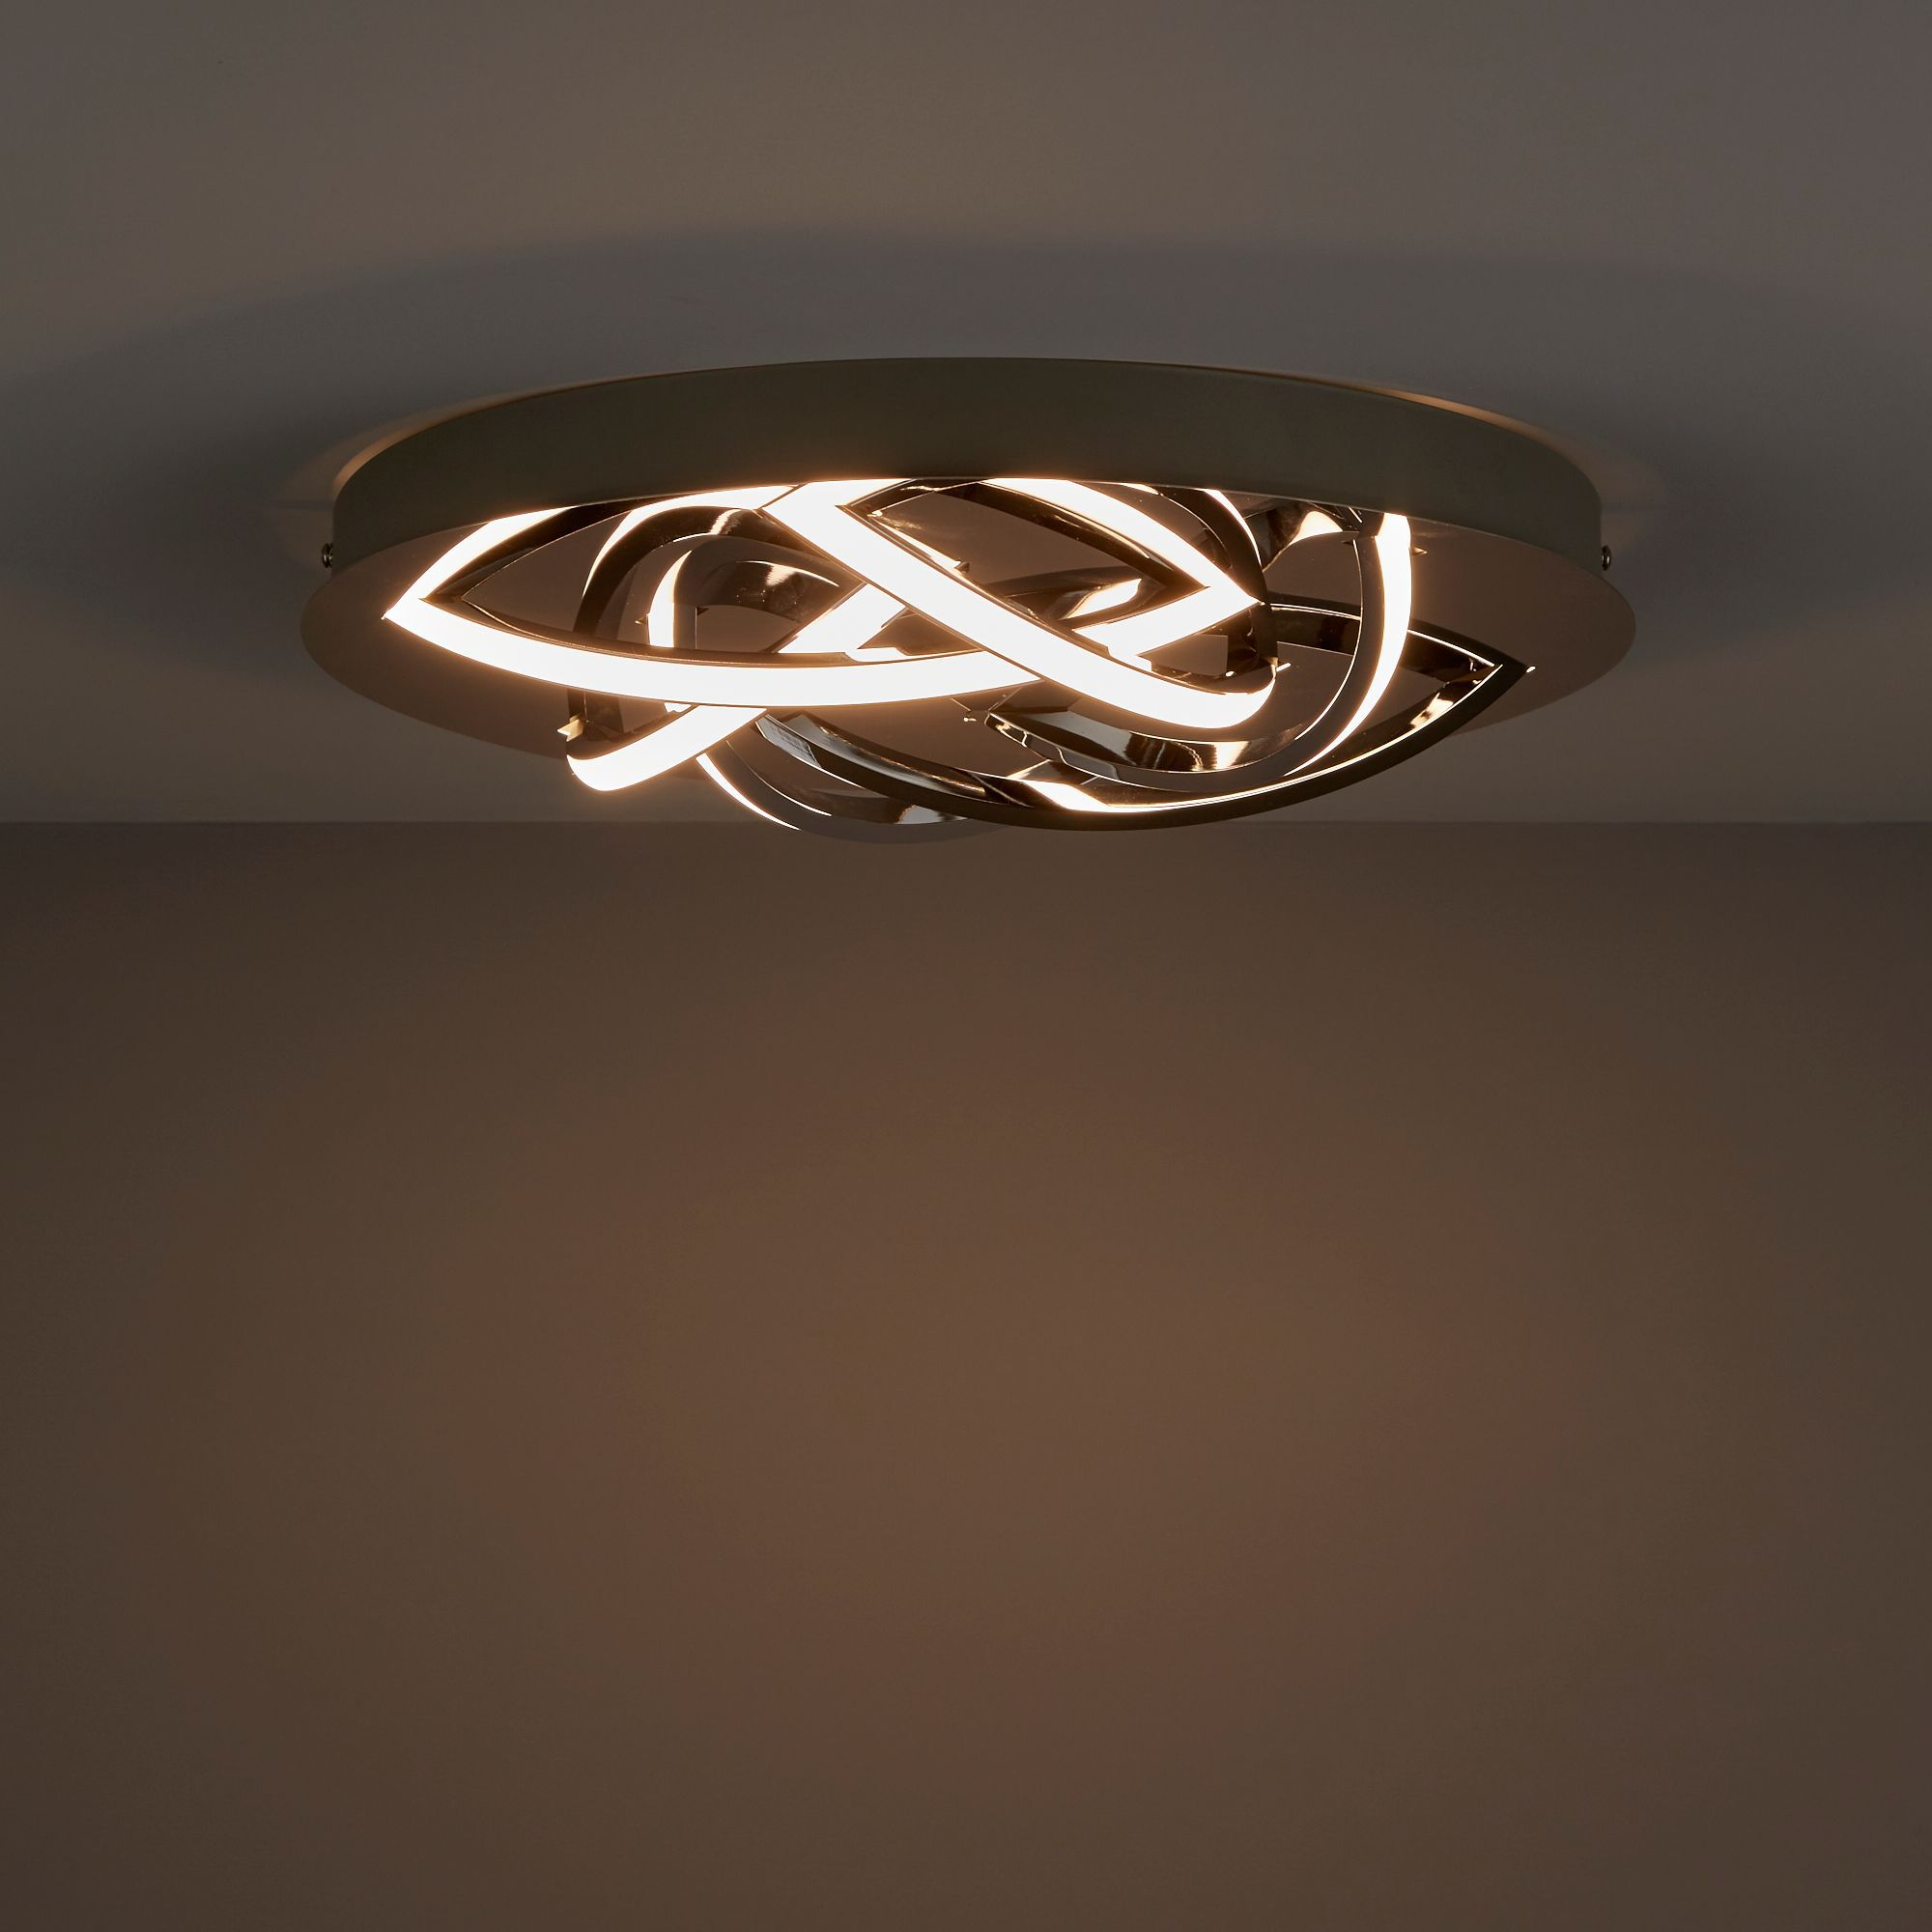 light ideas lighting property kitchen lowes mesmerizing image ceiling fixtures by